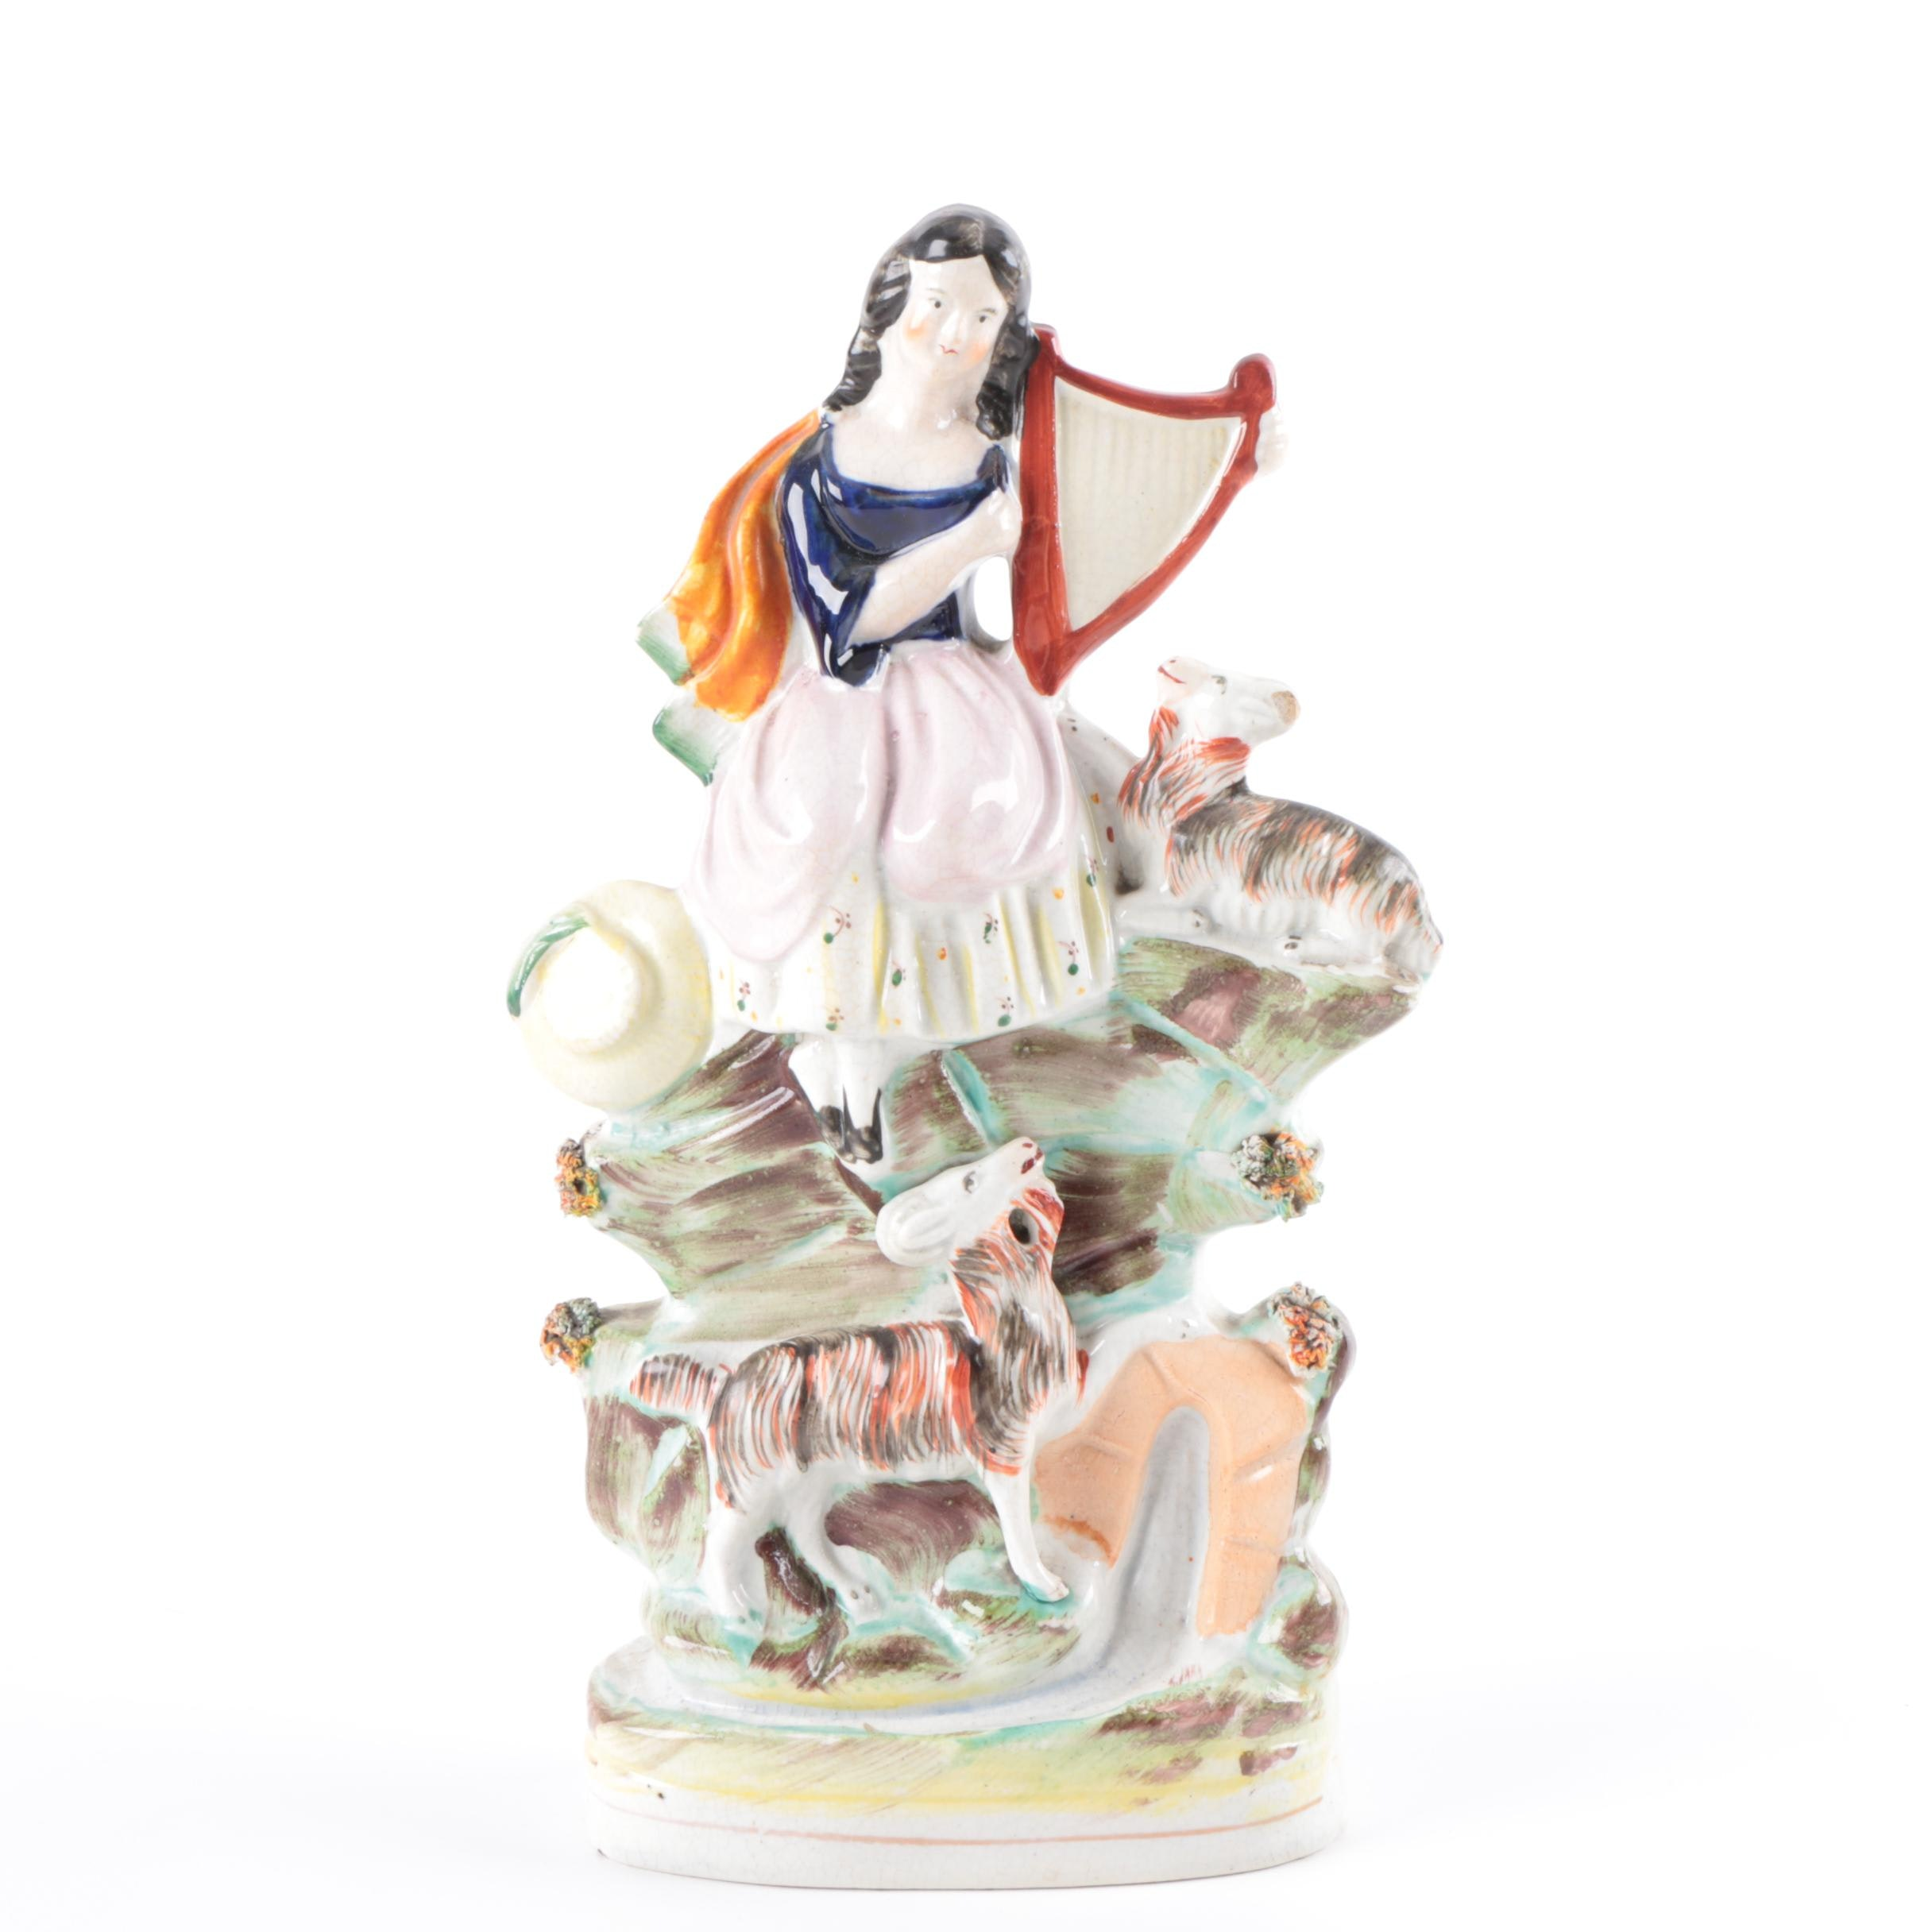 Harpist with Goat Ceramic Staffordshire Figurine with Bocage Decoration